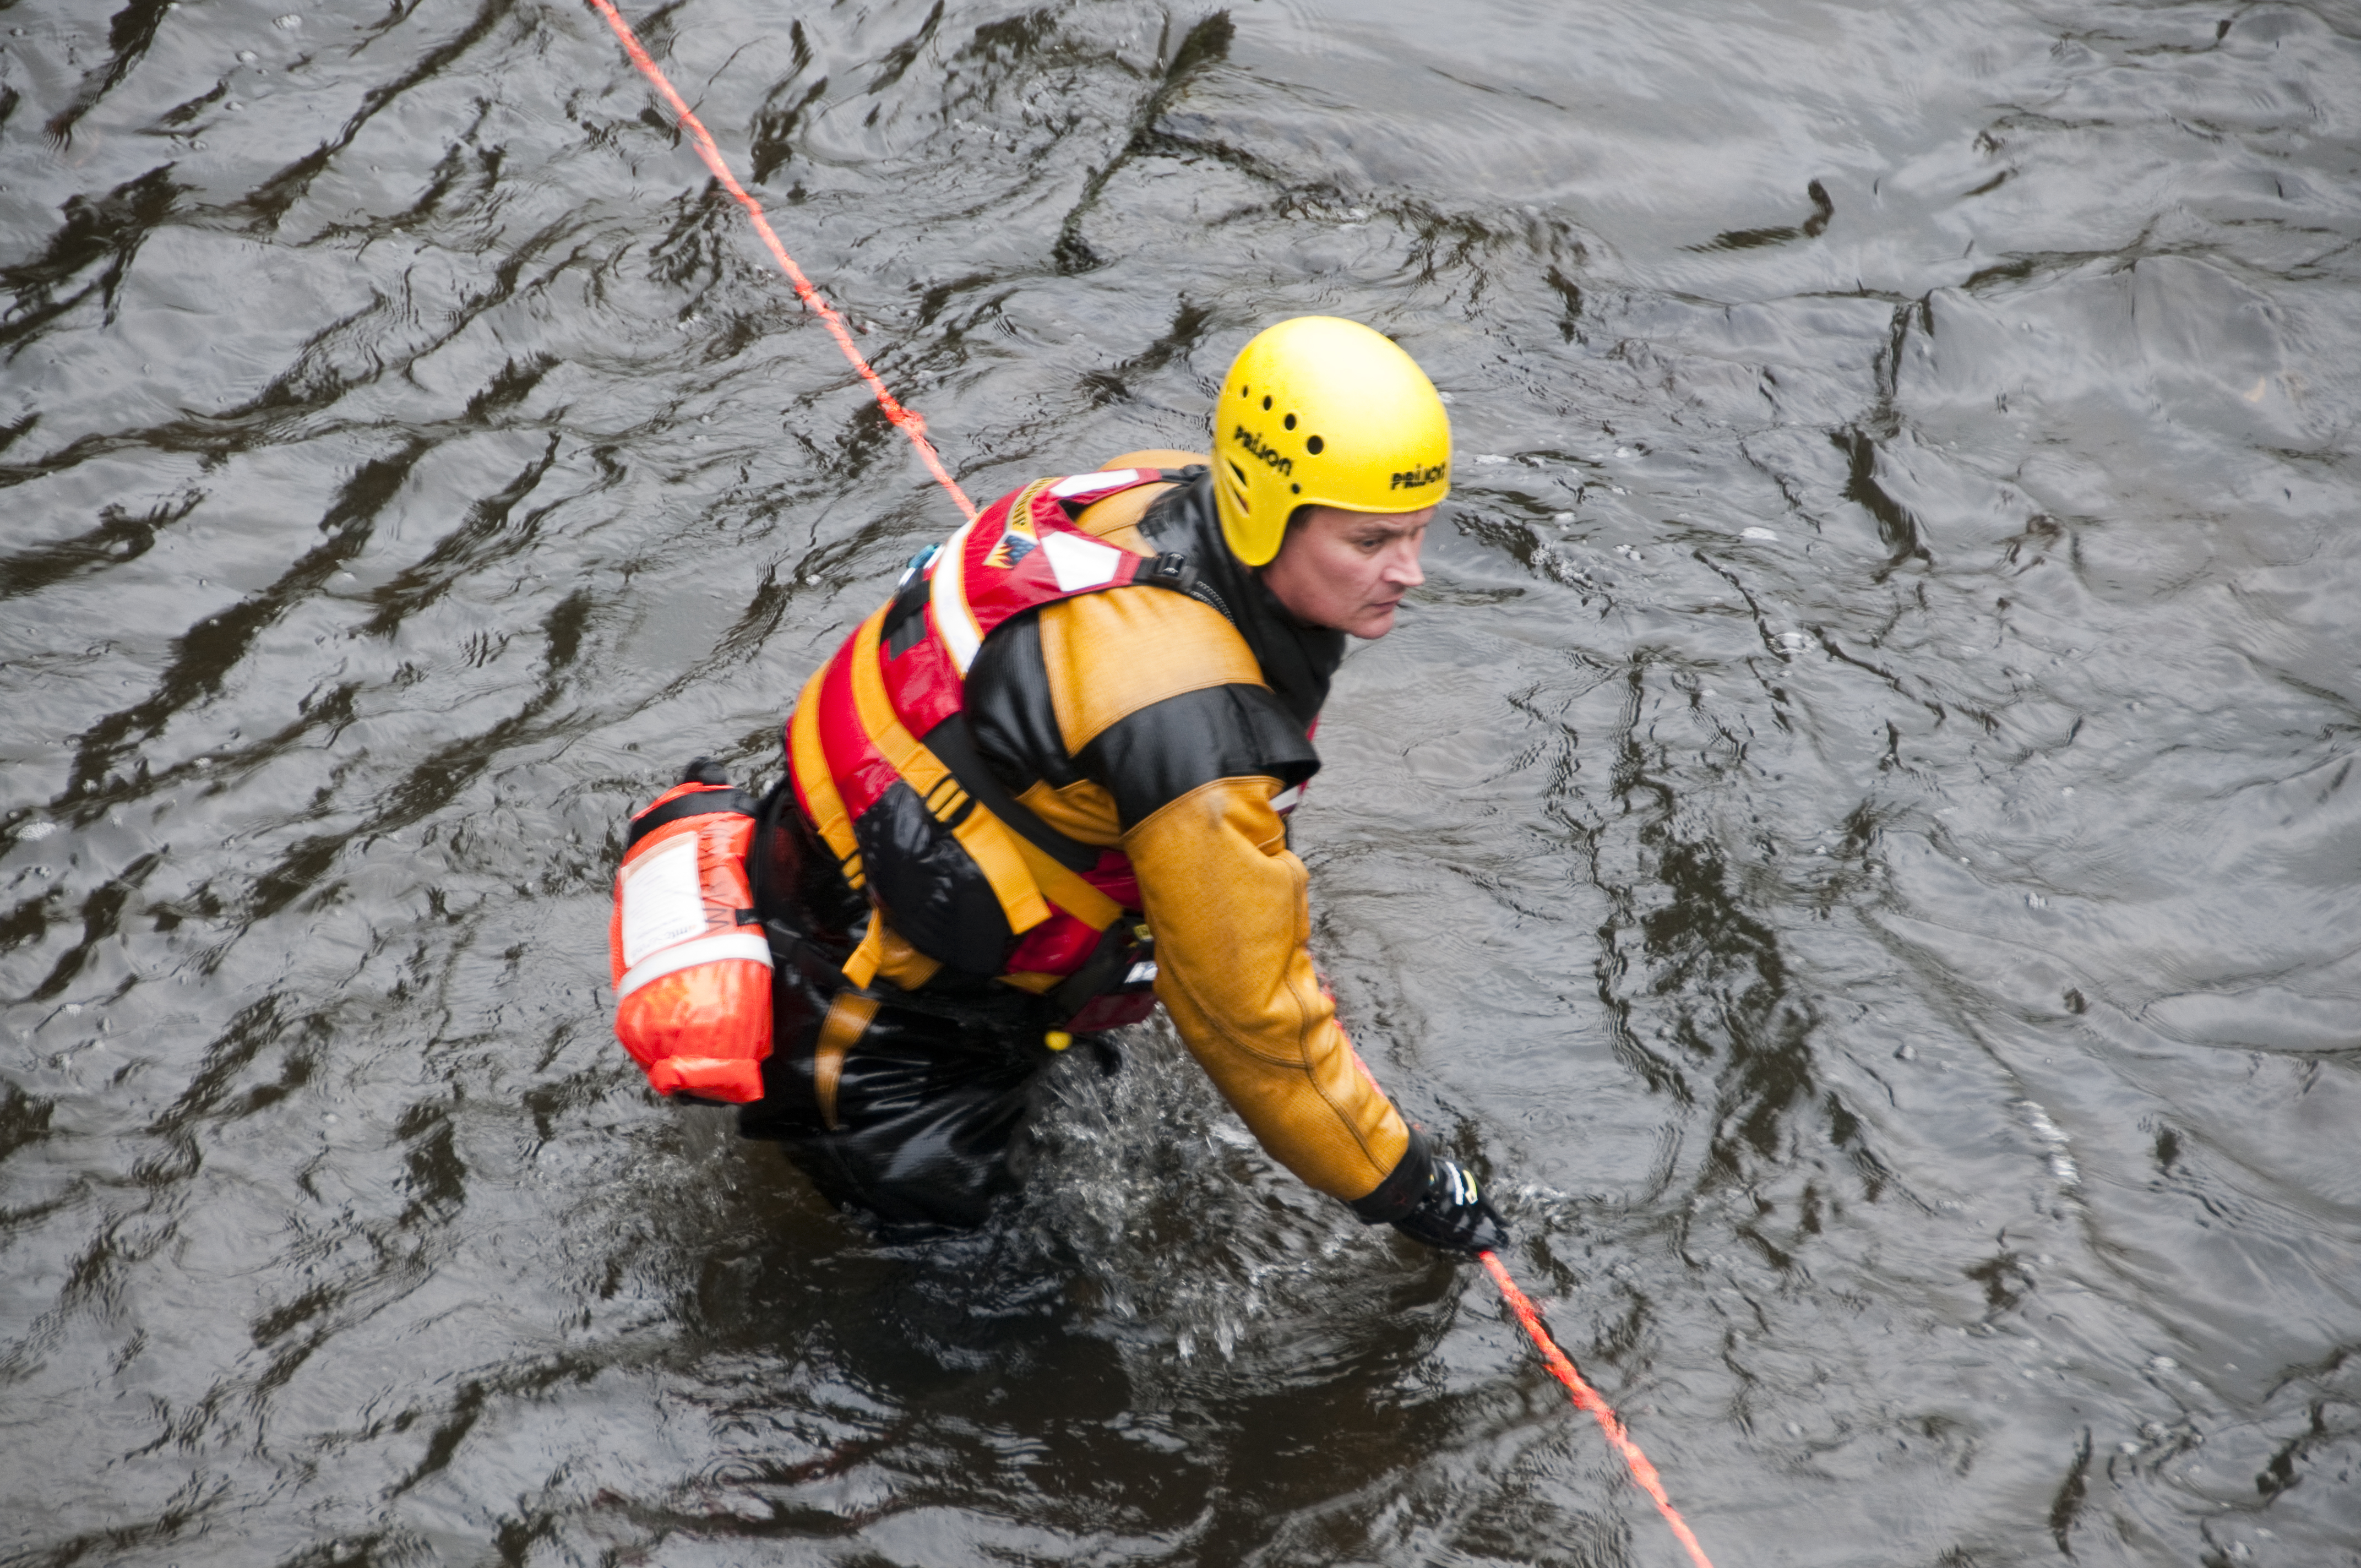 SFRS receives European award for water rescue training